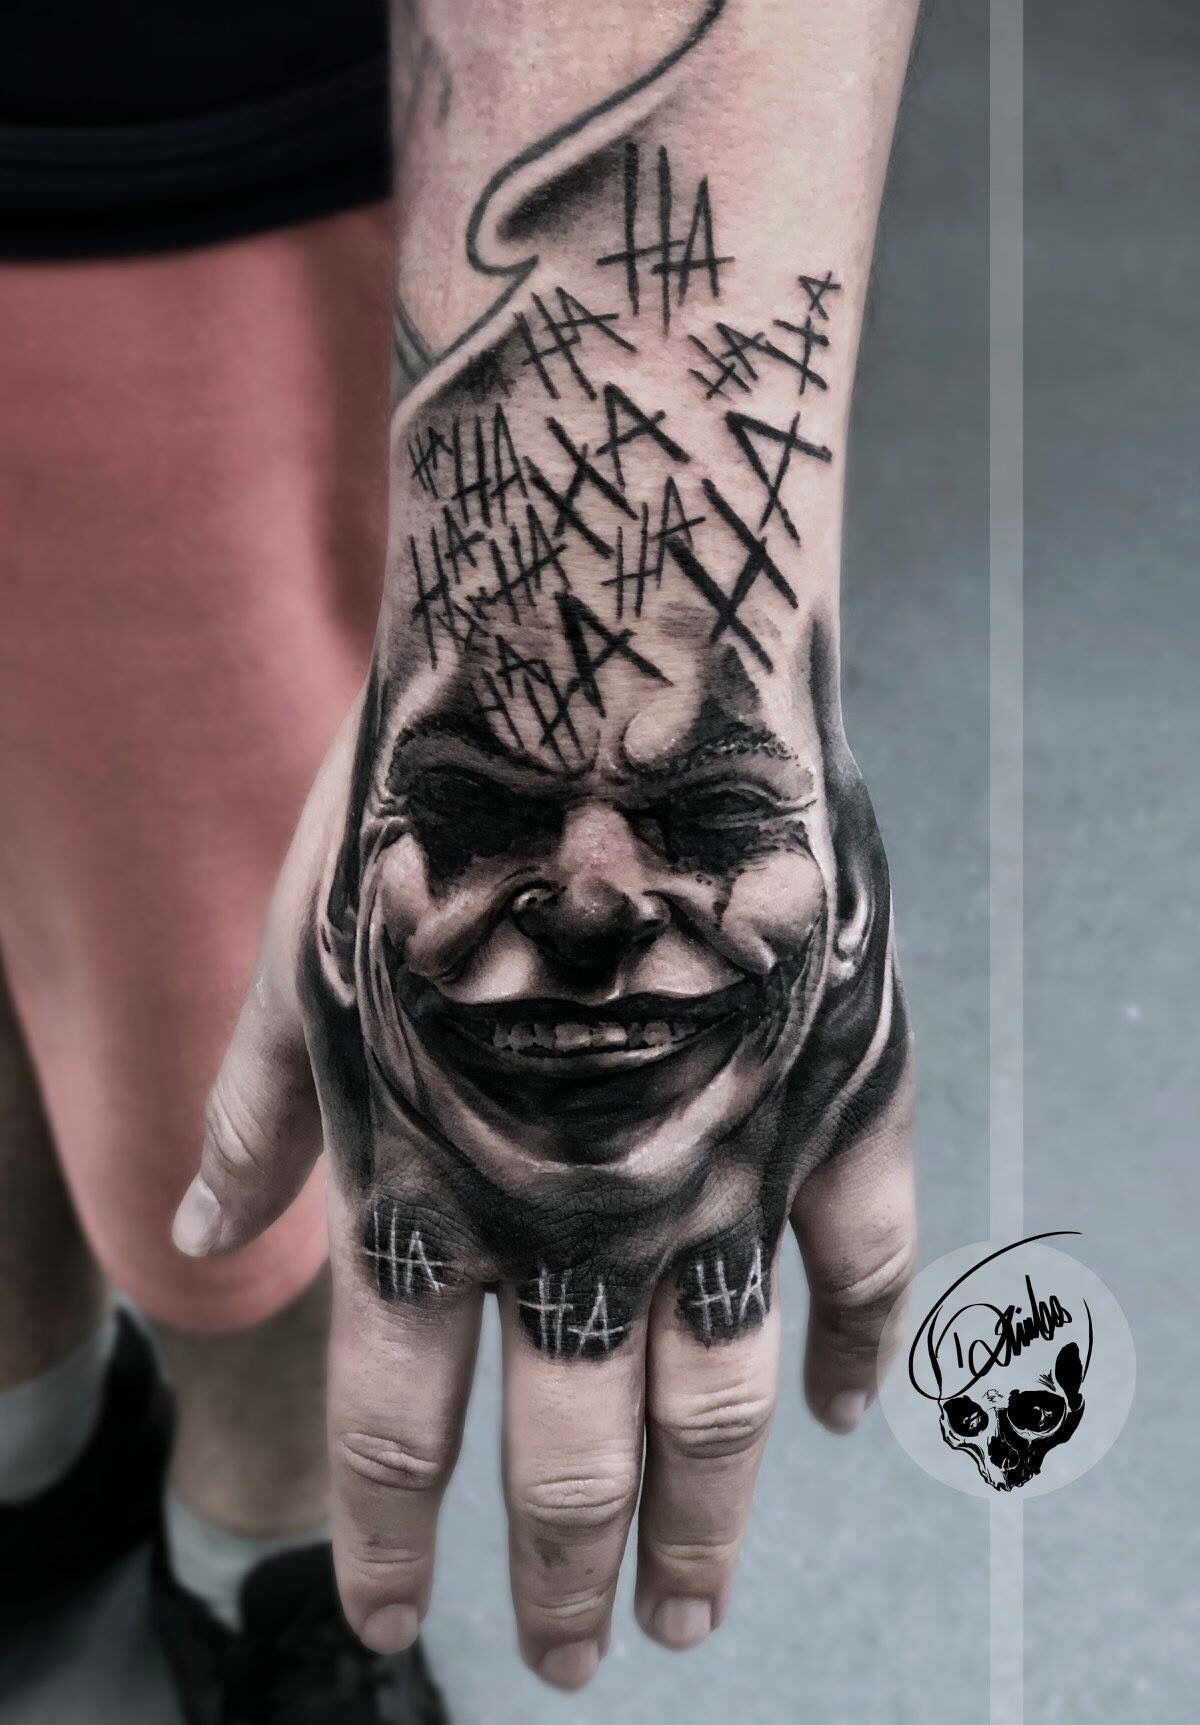 Pin By Anthony G On Tattoos Hand Tattoos Hand Tattoos For Guys Joker Tattoo